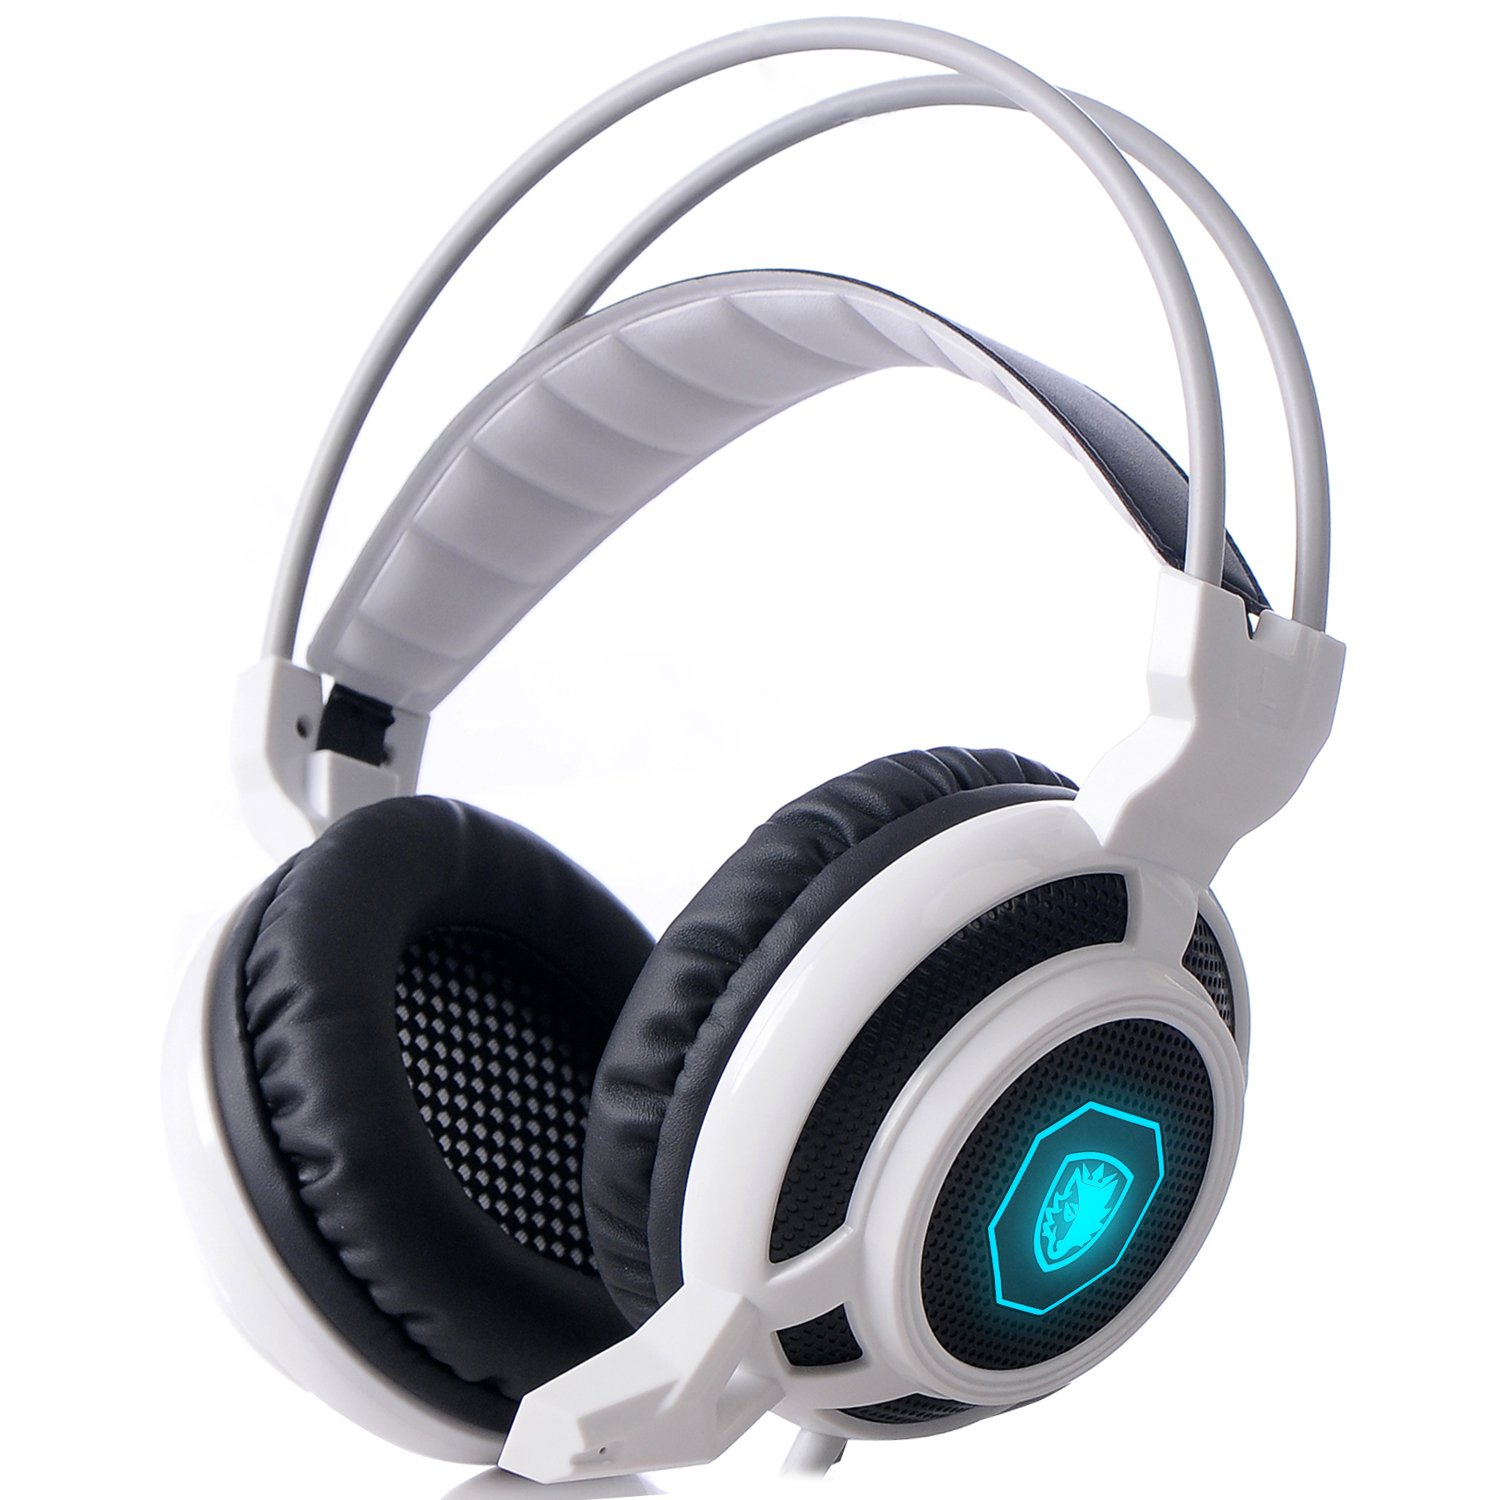 SADES Arcmage 3.5mm Stereo Surround Sound PC Gaming Over-Ear Headband Headphones Wired Noise Cancelling Headset with High Sensitivity Microphone & Volume Control LED Light for PC Gamer /Notebook/Laptop(White)